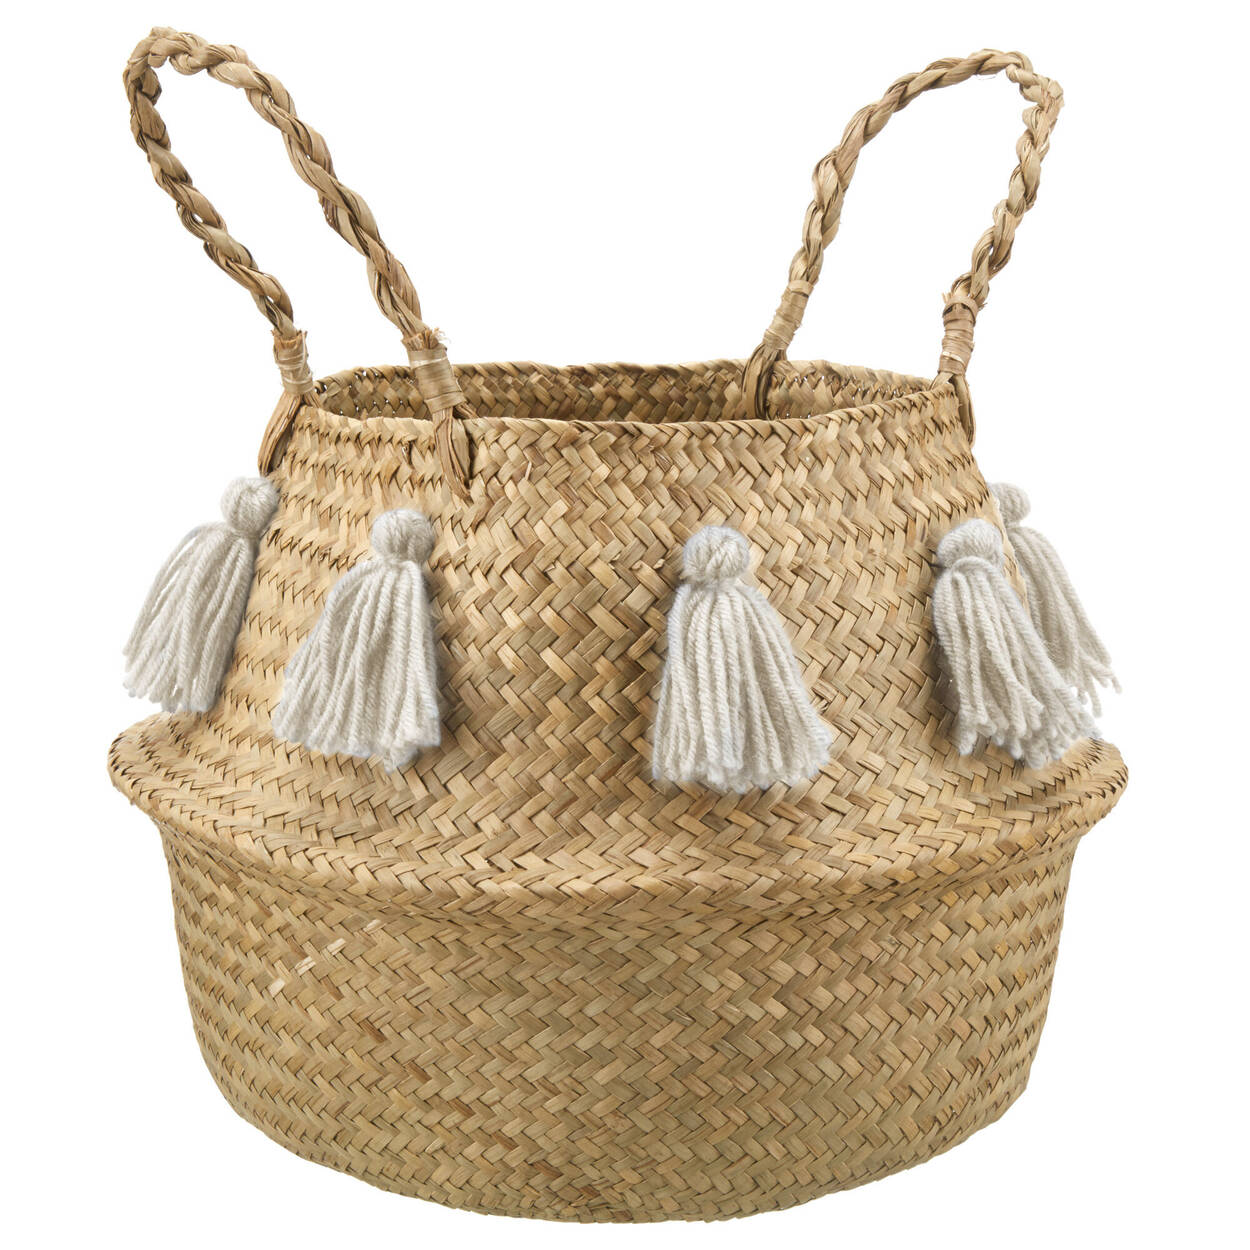 Seagrass Basket with Tassels and Handles